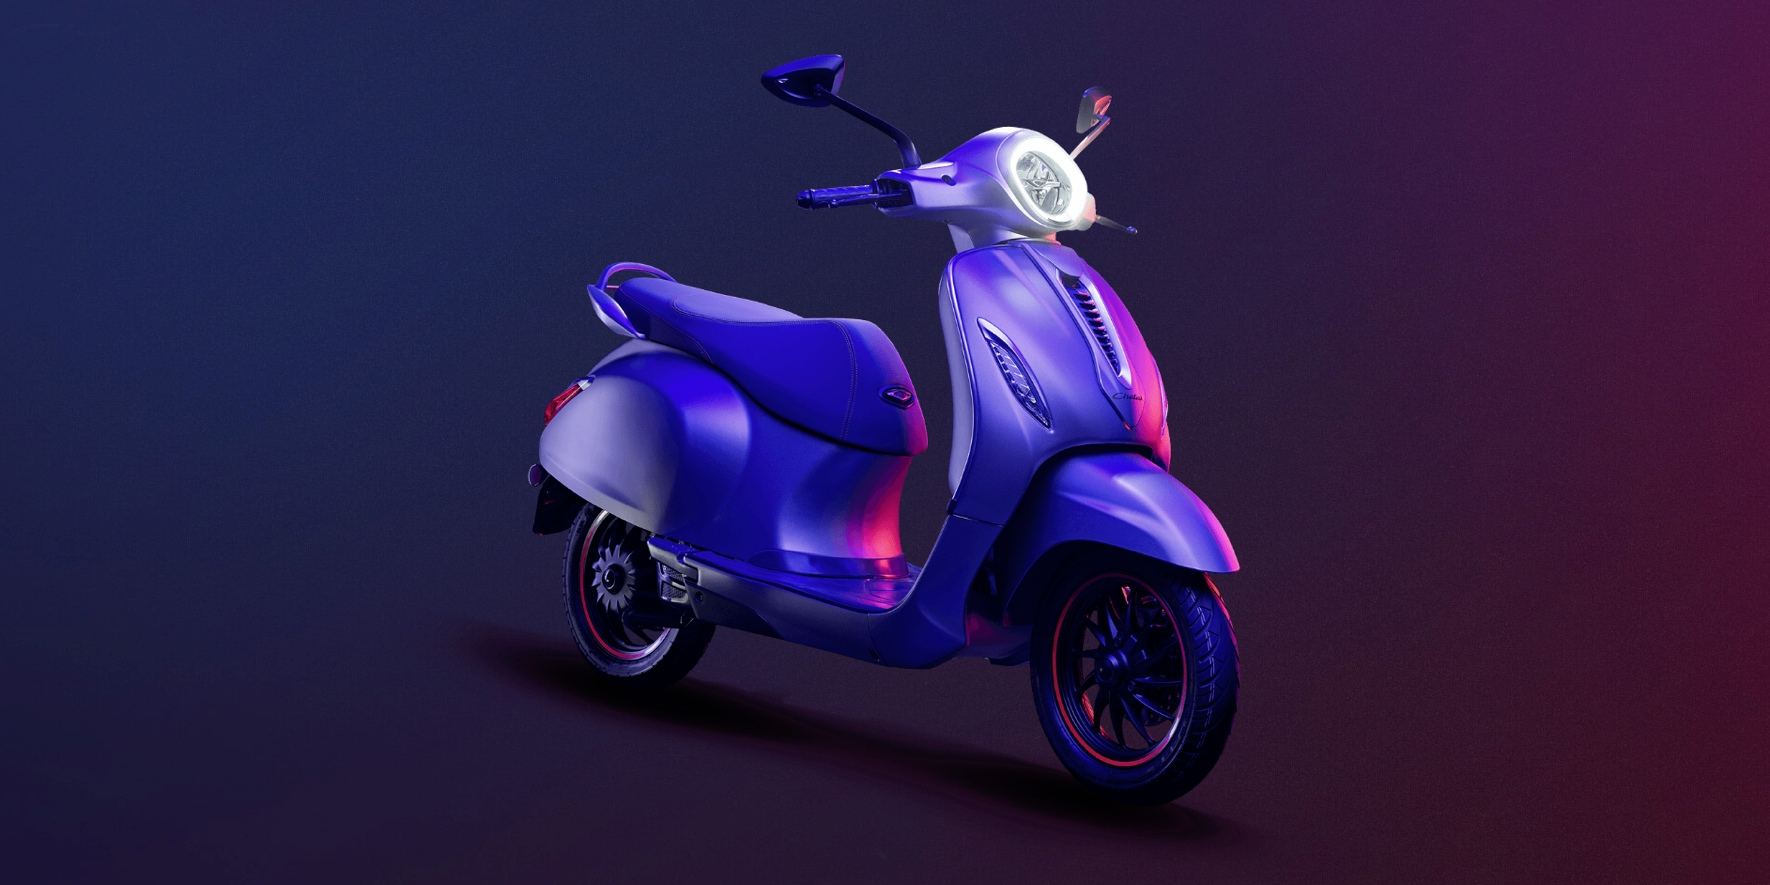 Suzuki, last of Big Four Japanese motorcycle makers, to finally go electric - Electrek